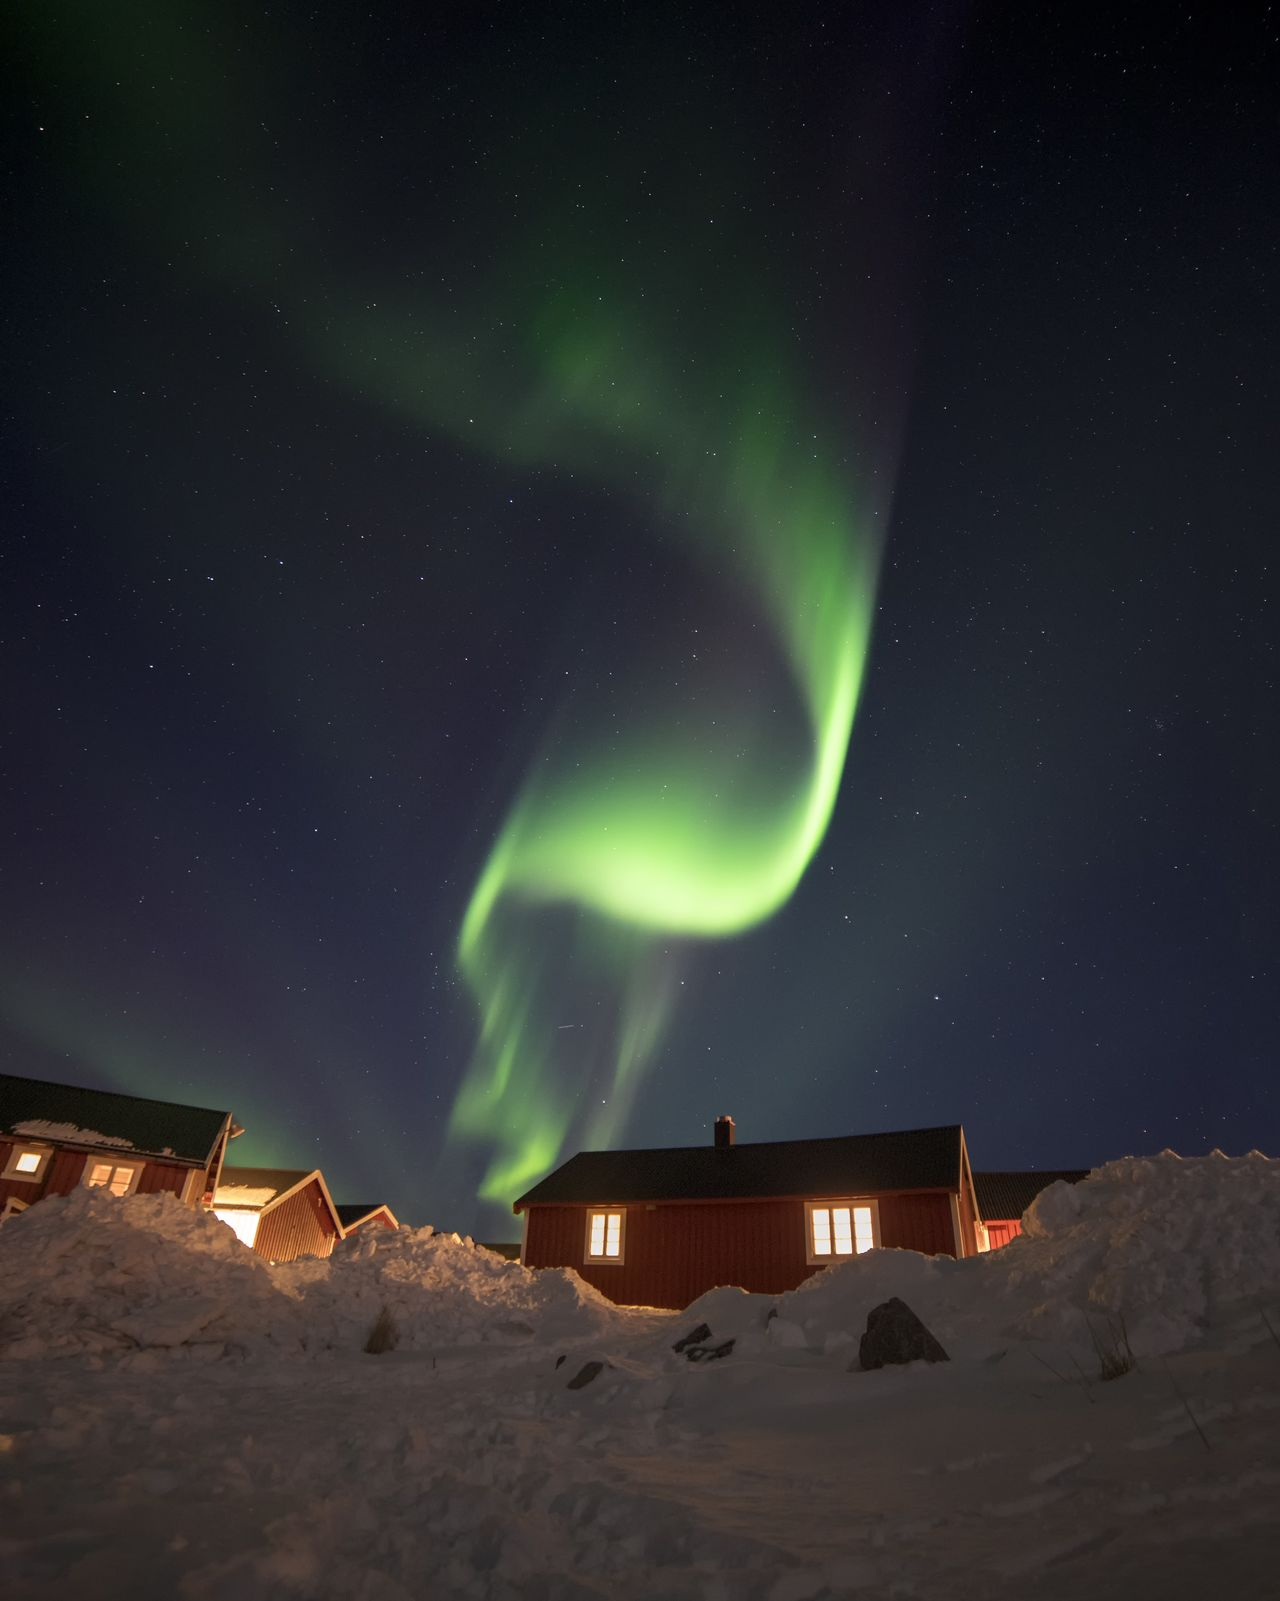 Aurora polaris over houses against sky at night